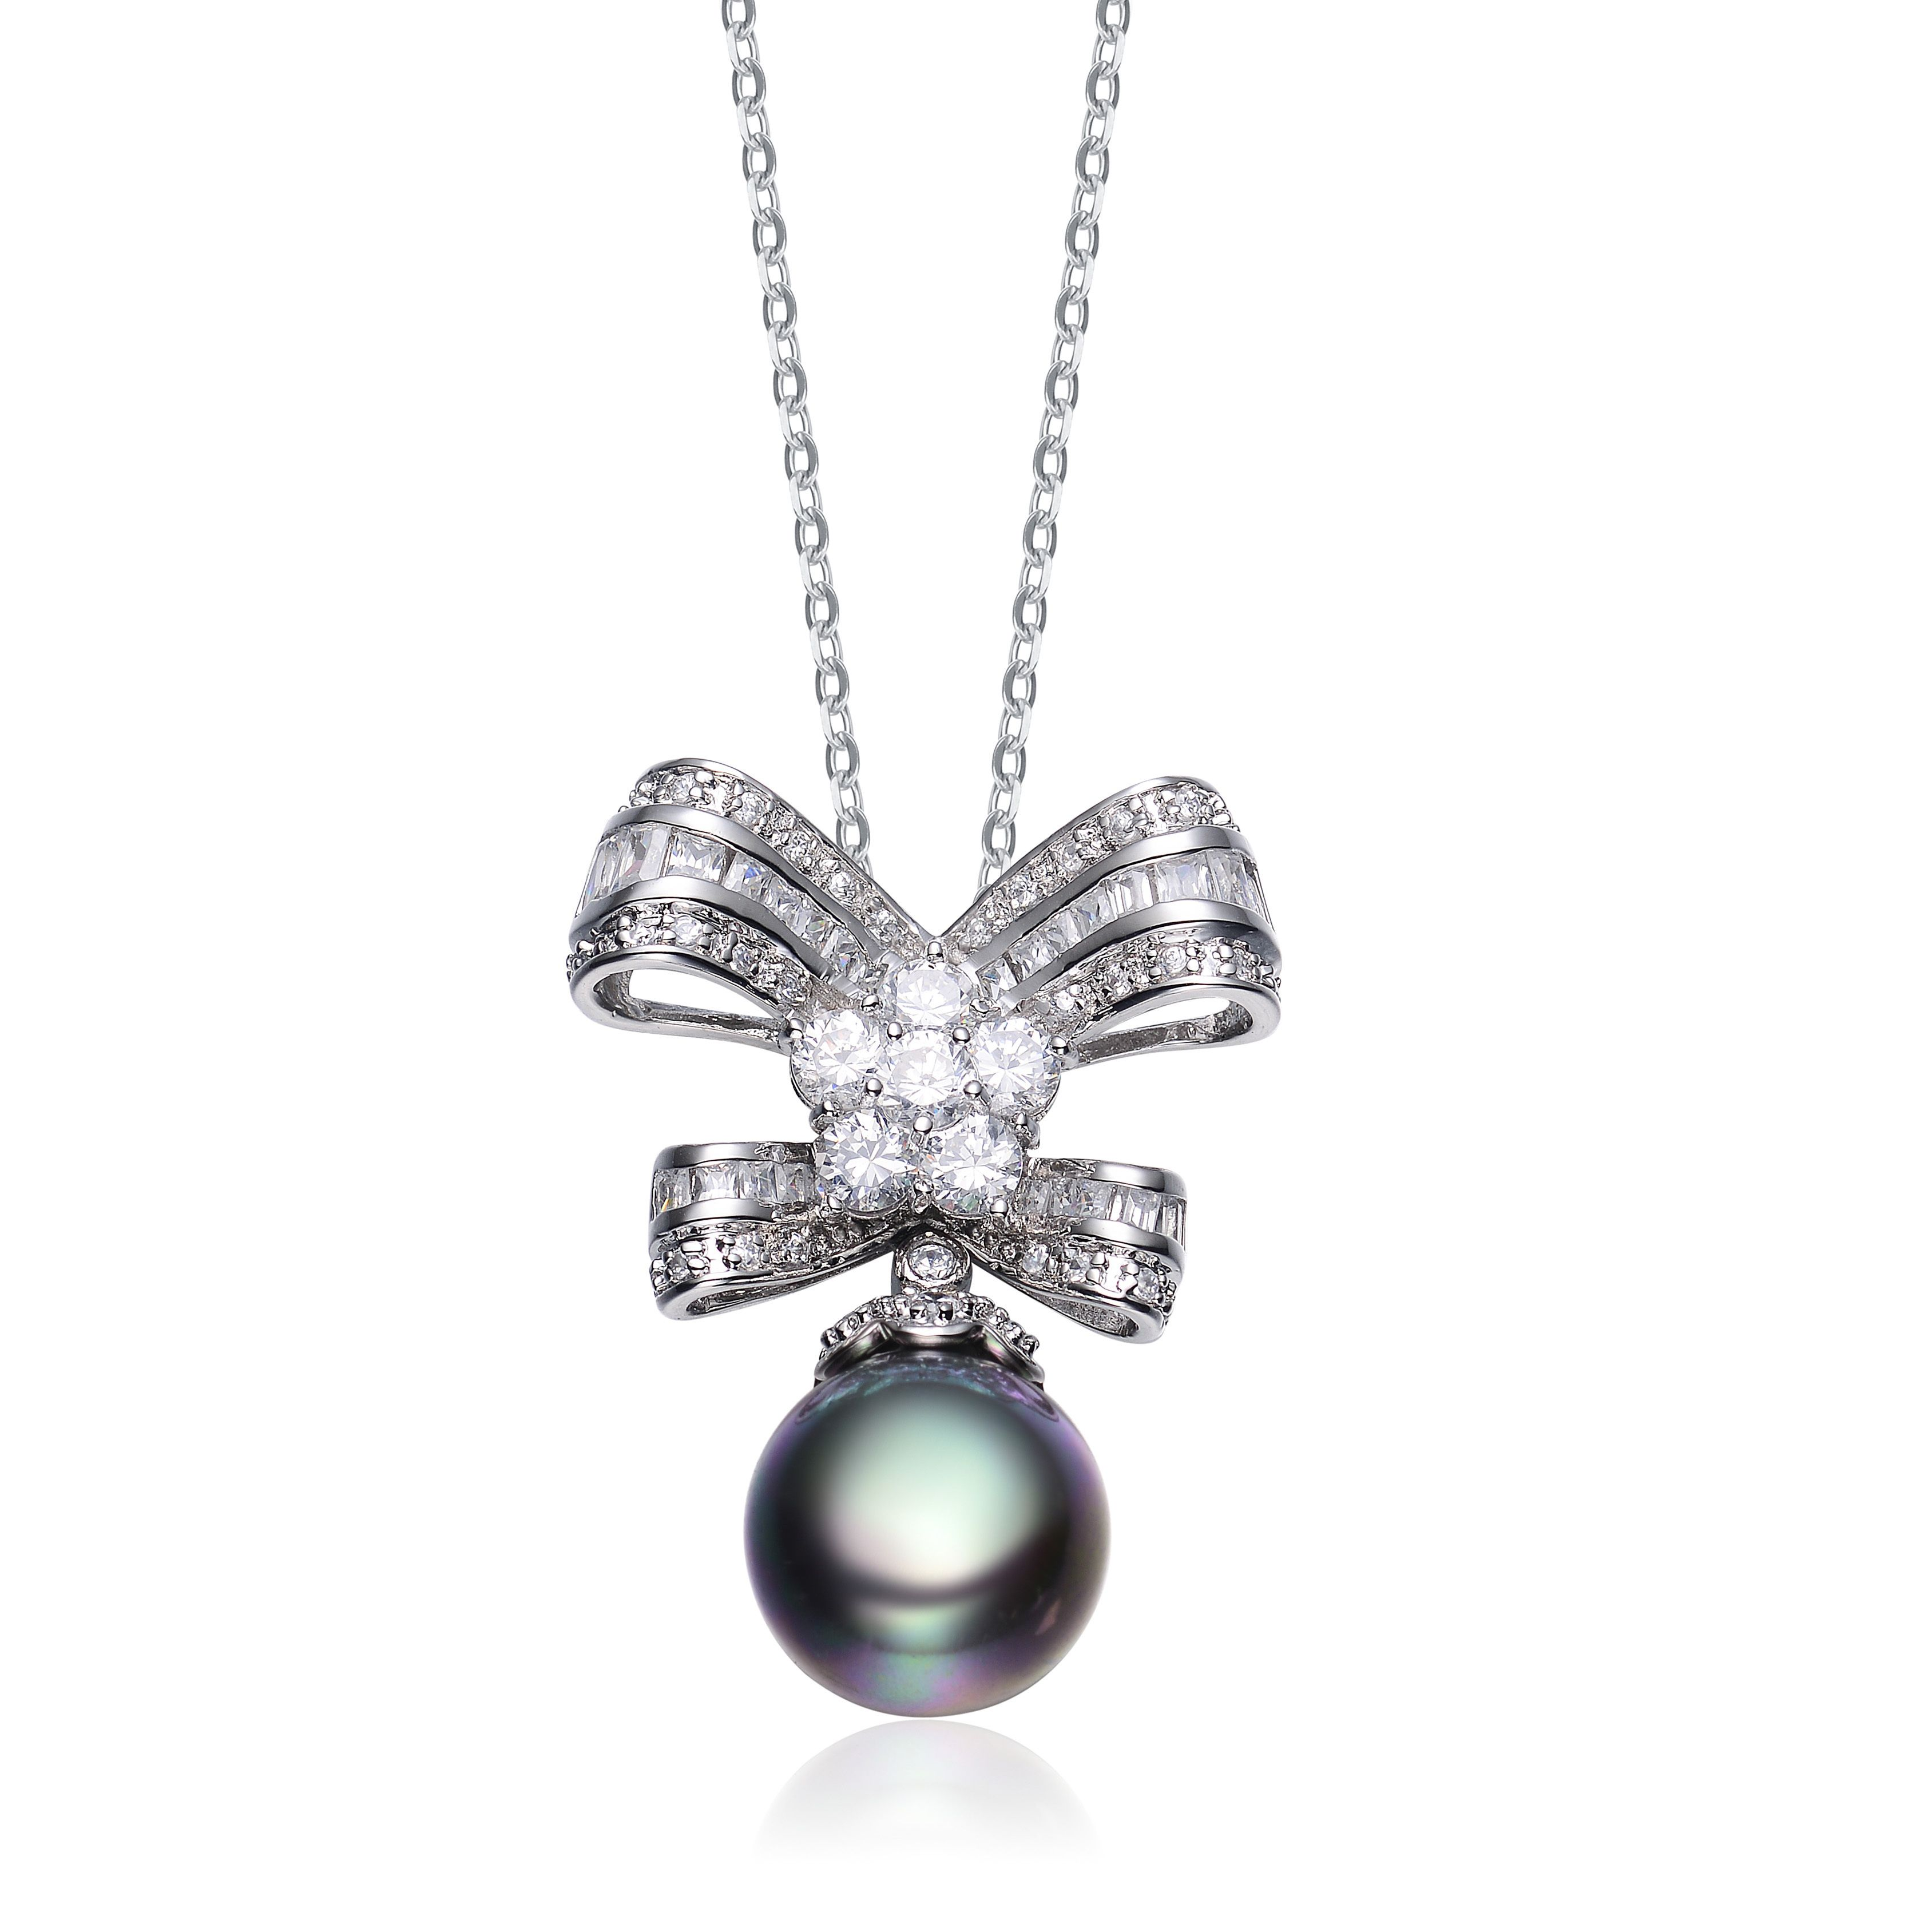 Collette Z Sterling Silver Cubic Zirconia Pearl Pendant